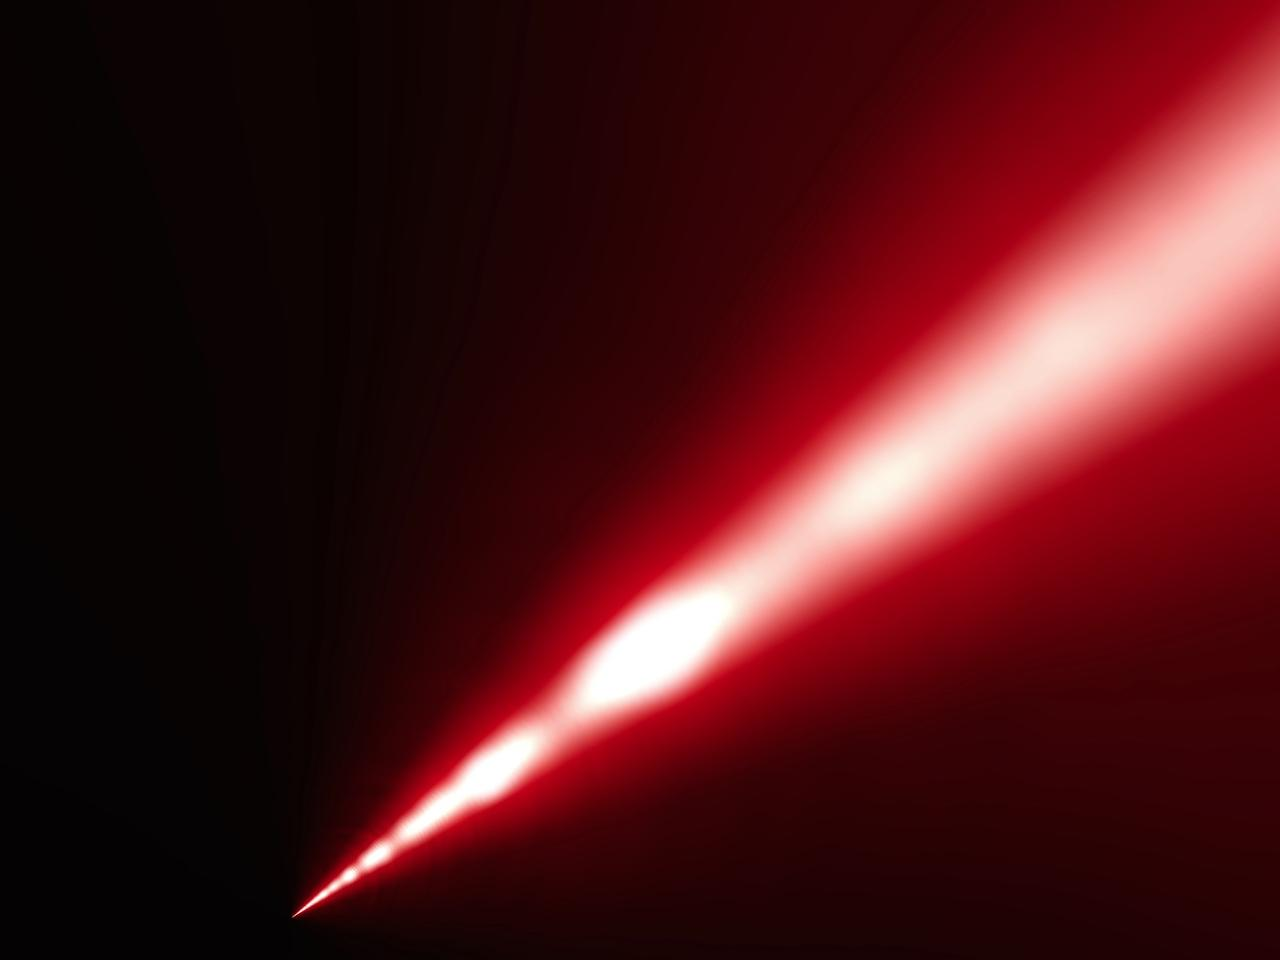 Laser-created plasma channels could one day help divert lightning strikes